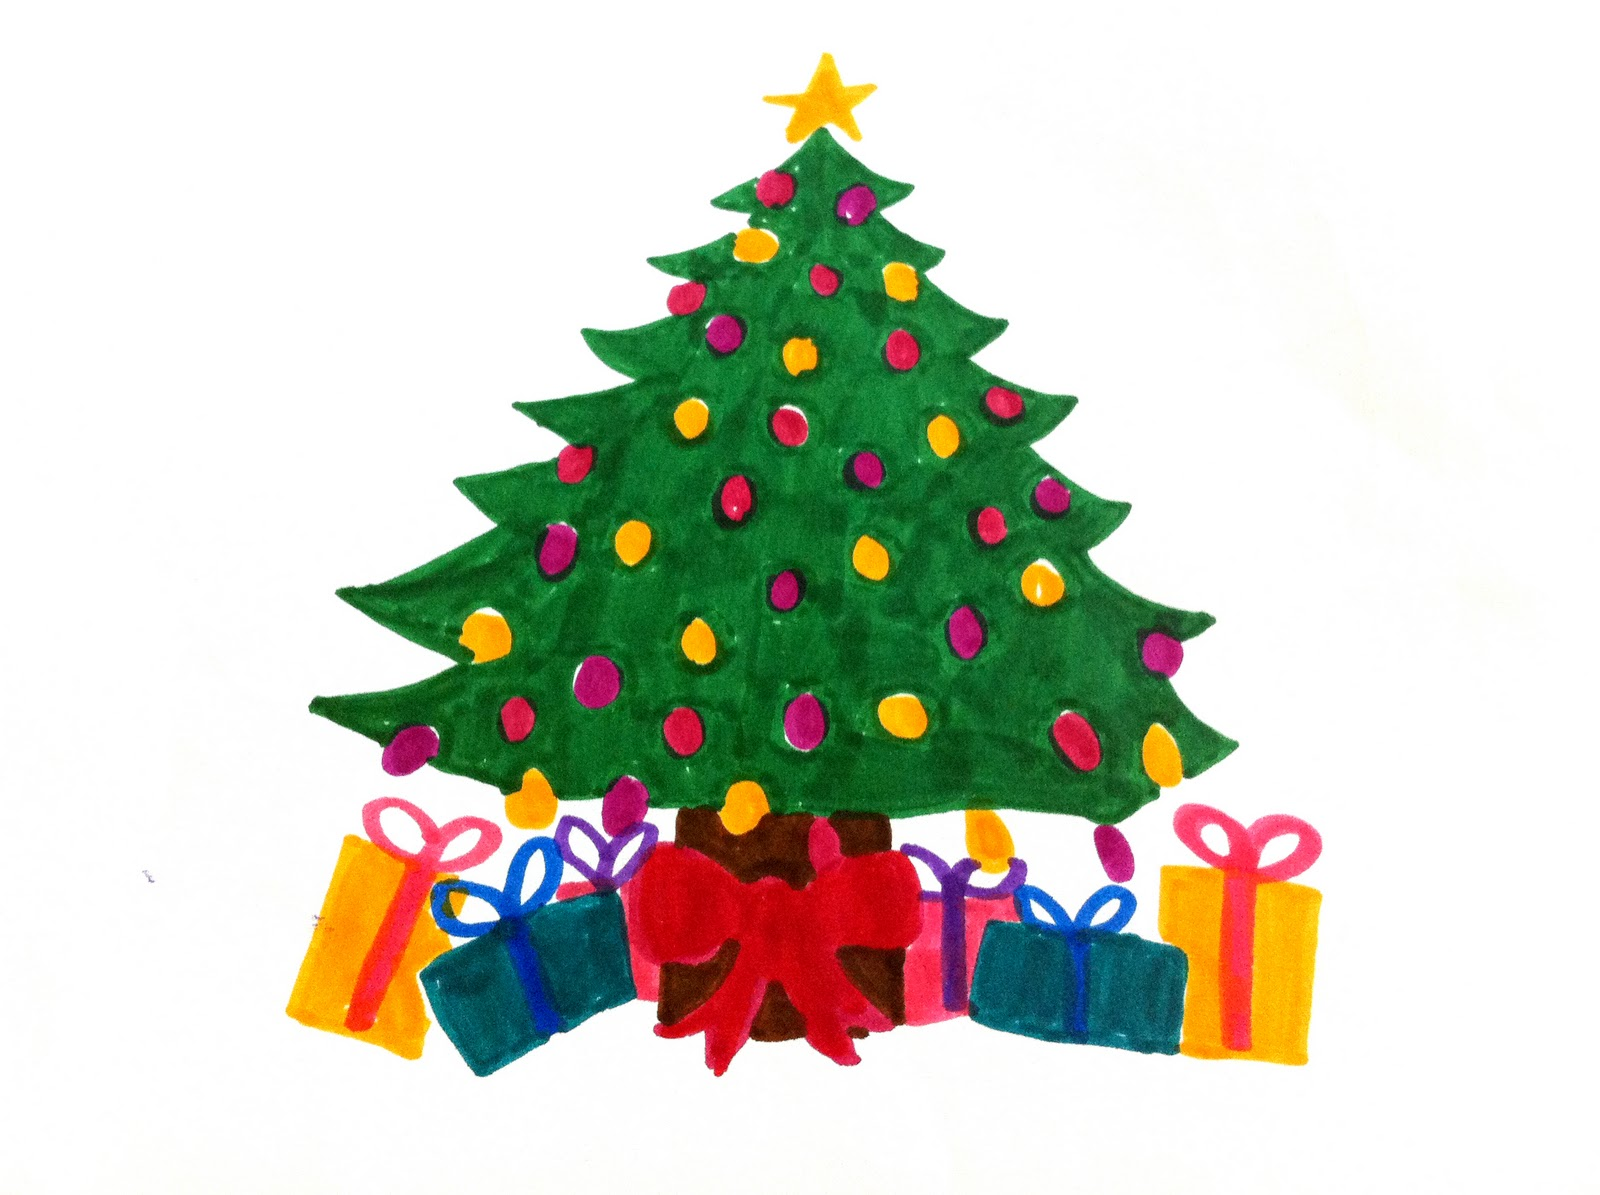 Christmas Tree Draw - ClipArt Best - ClipArt Best